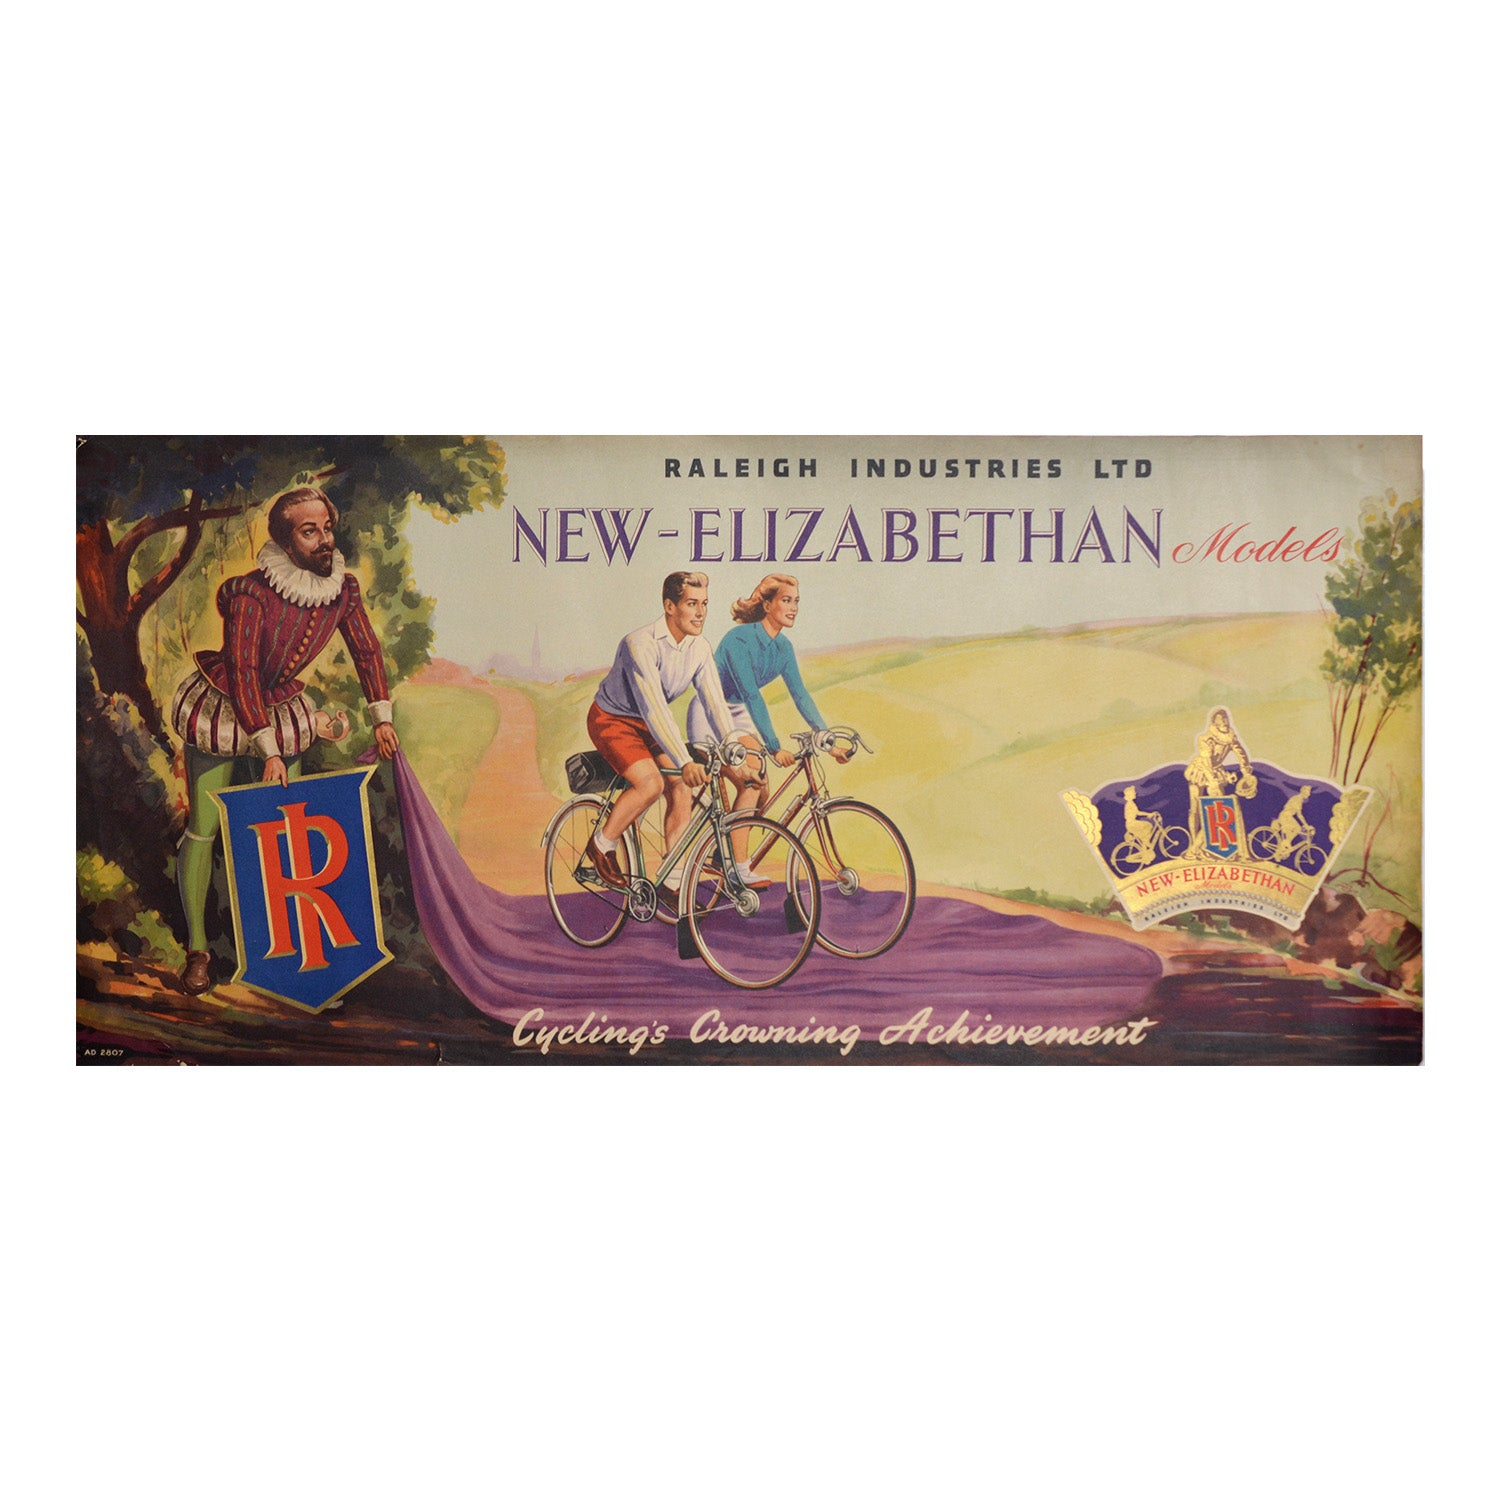 Original Raleigh poster New - Elizabethan Models